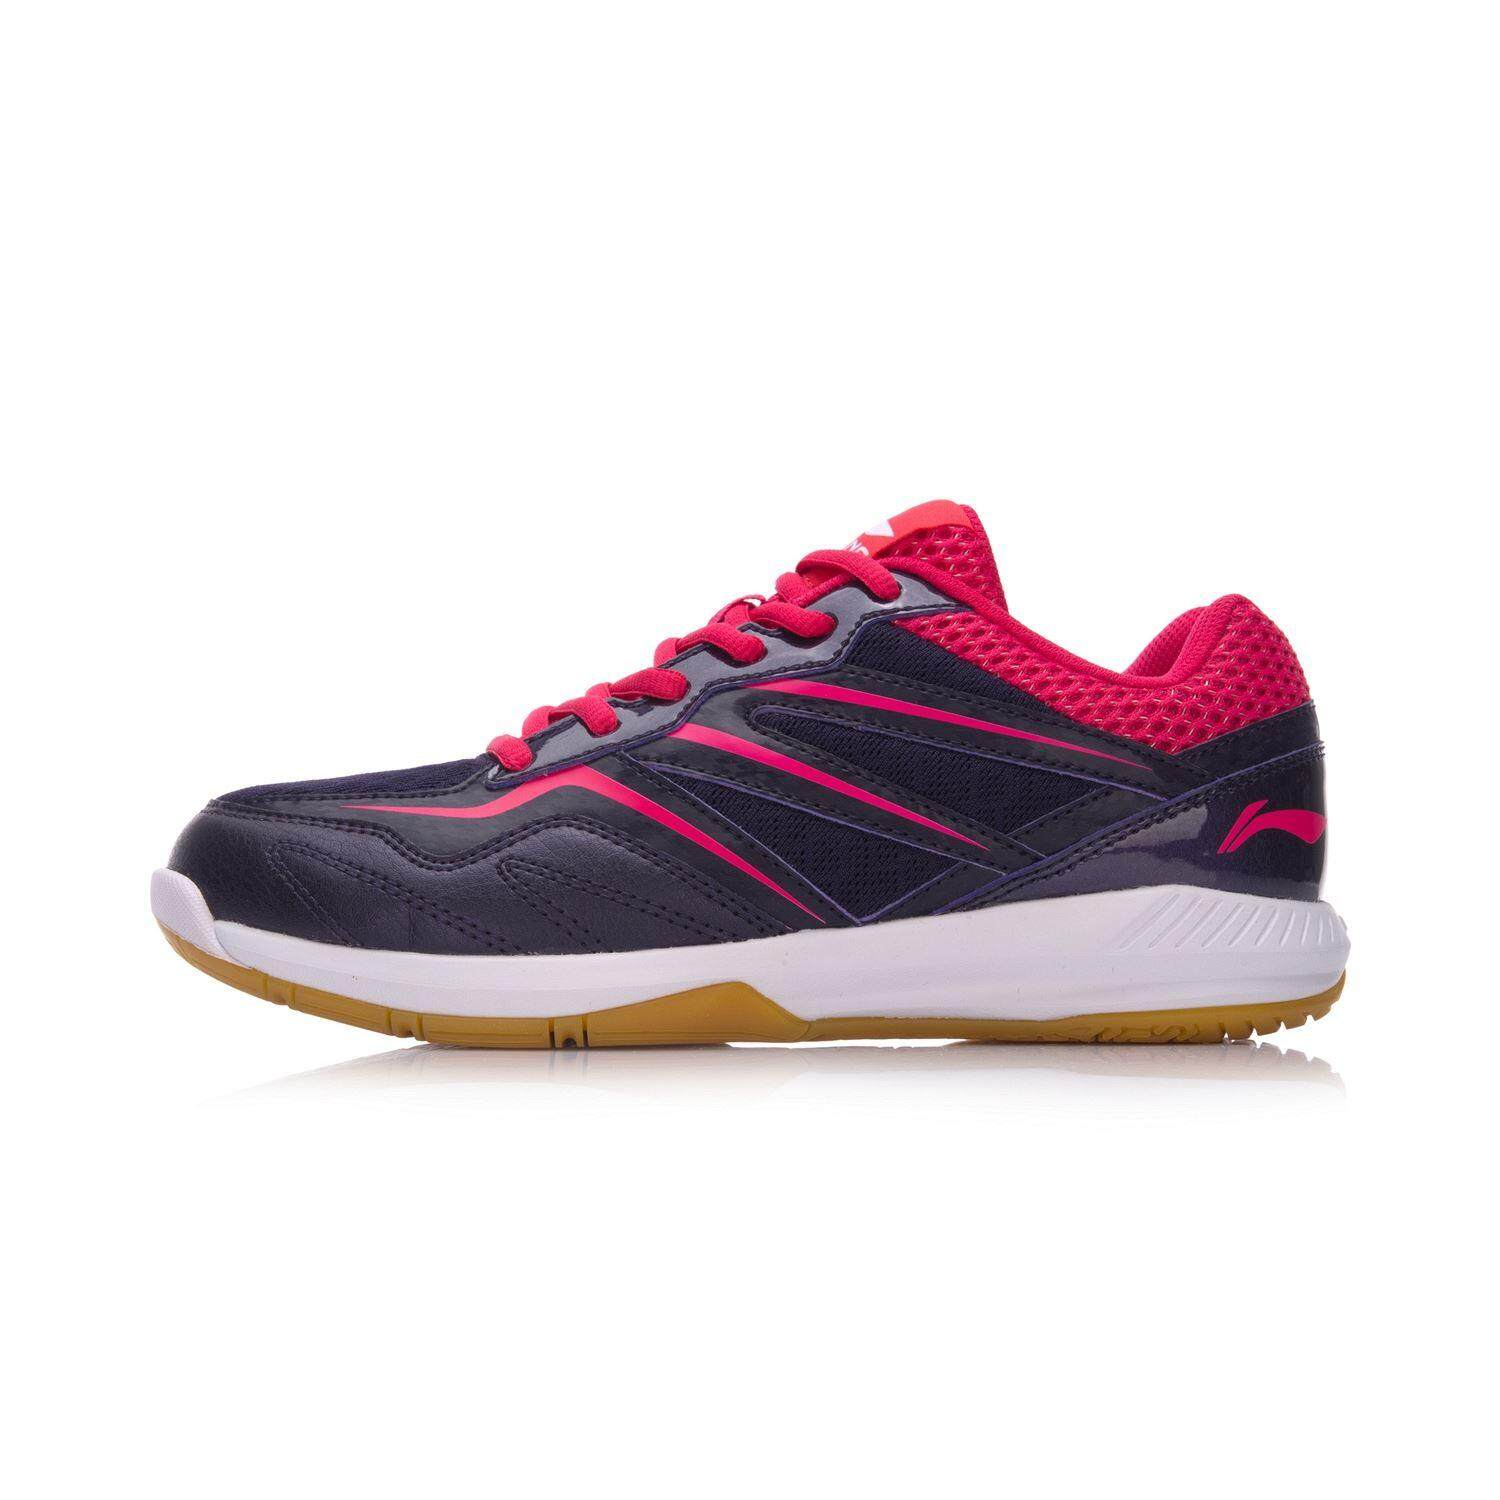 LINING Badminton Shoes Women s Shoes 2019 New Style Wear-Resistant  Anti-slip Low Top 4ec4510799